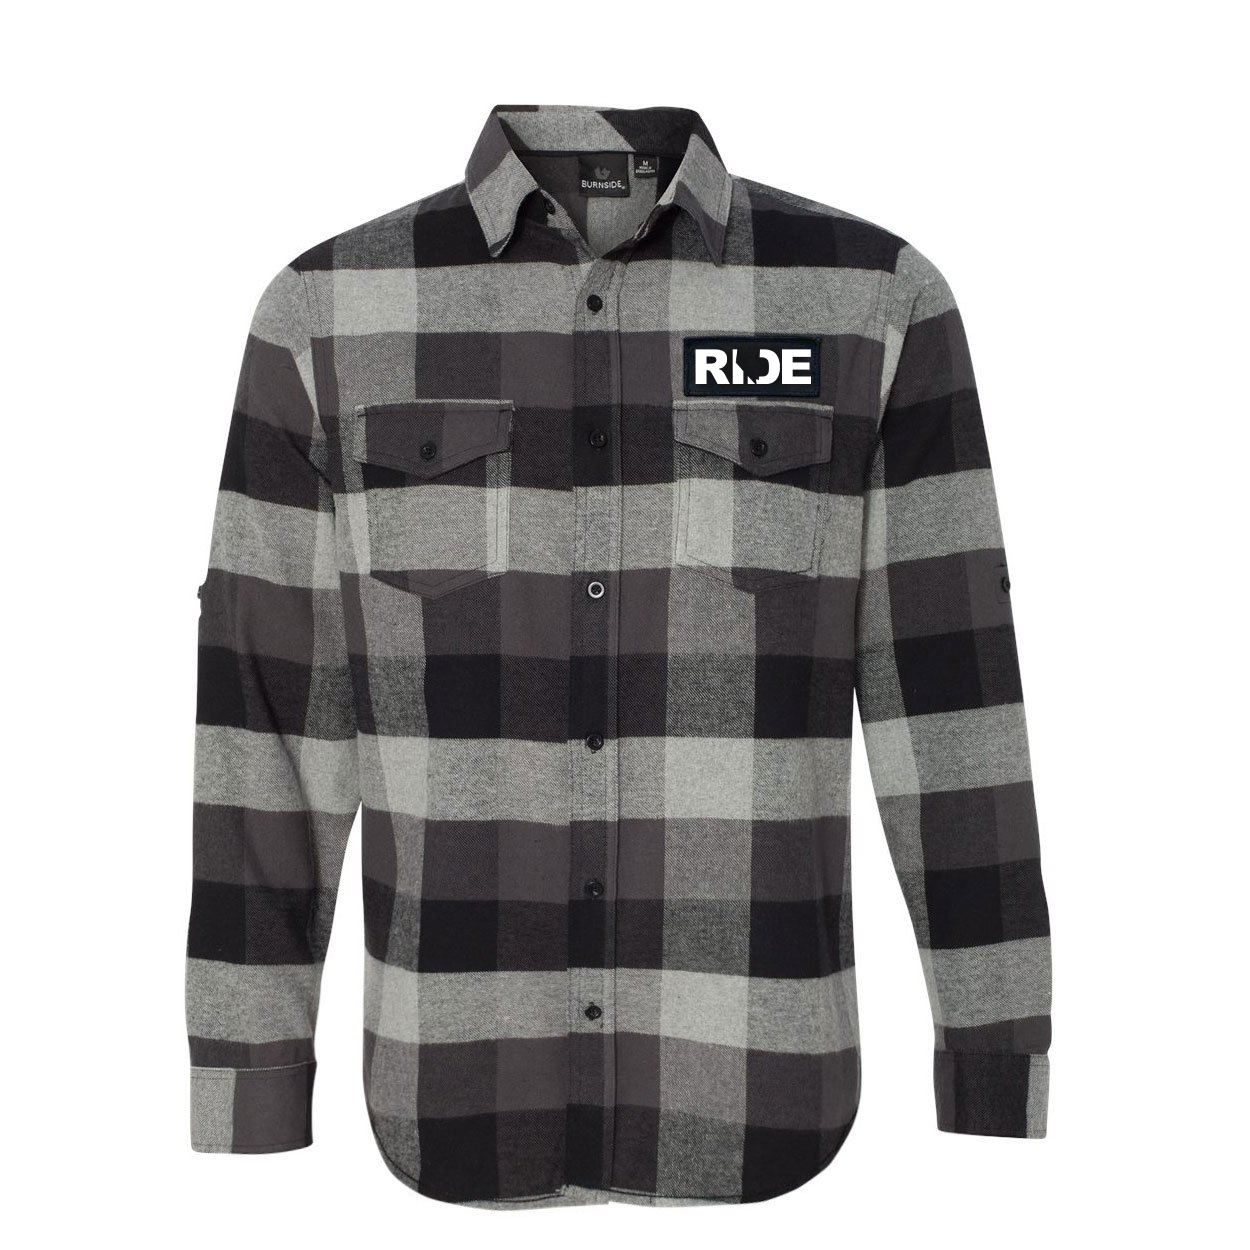 Ride Nevada Classic Unisex Long Sleeve Woven Patch Flannel Shirt Black/Gray (White Logo)